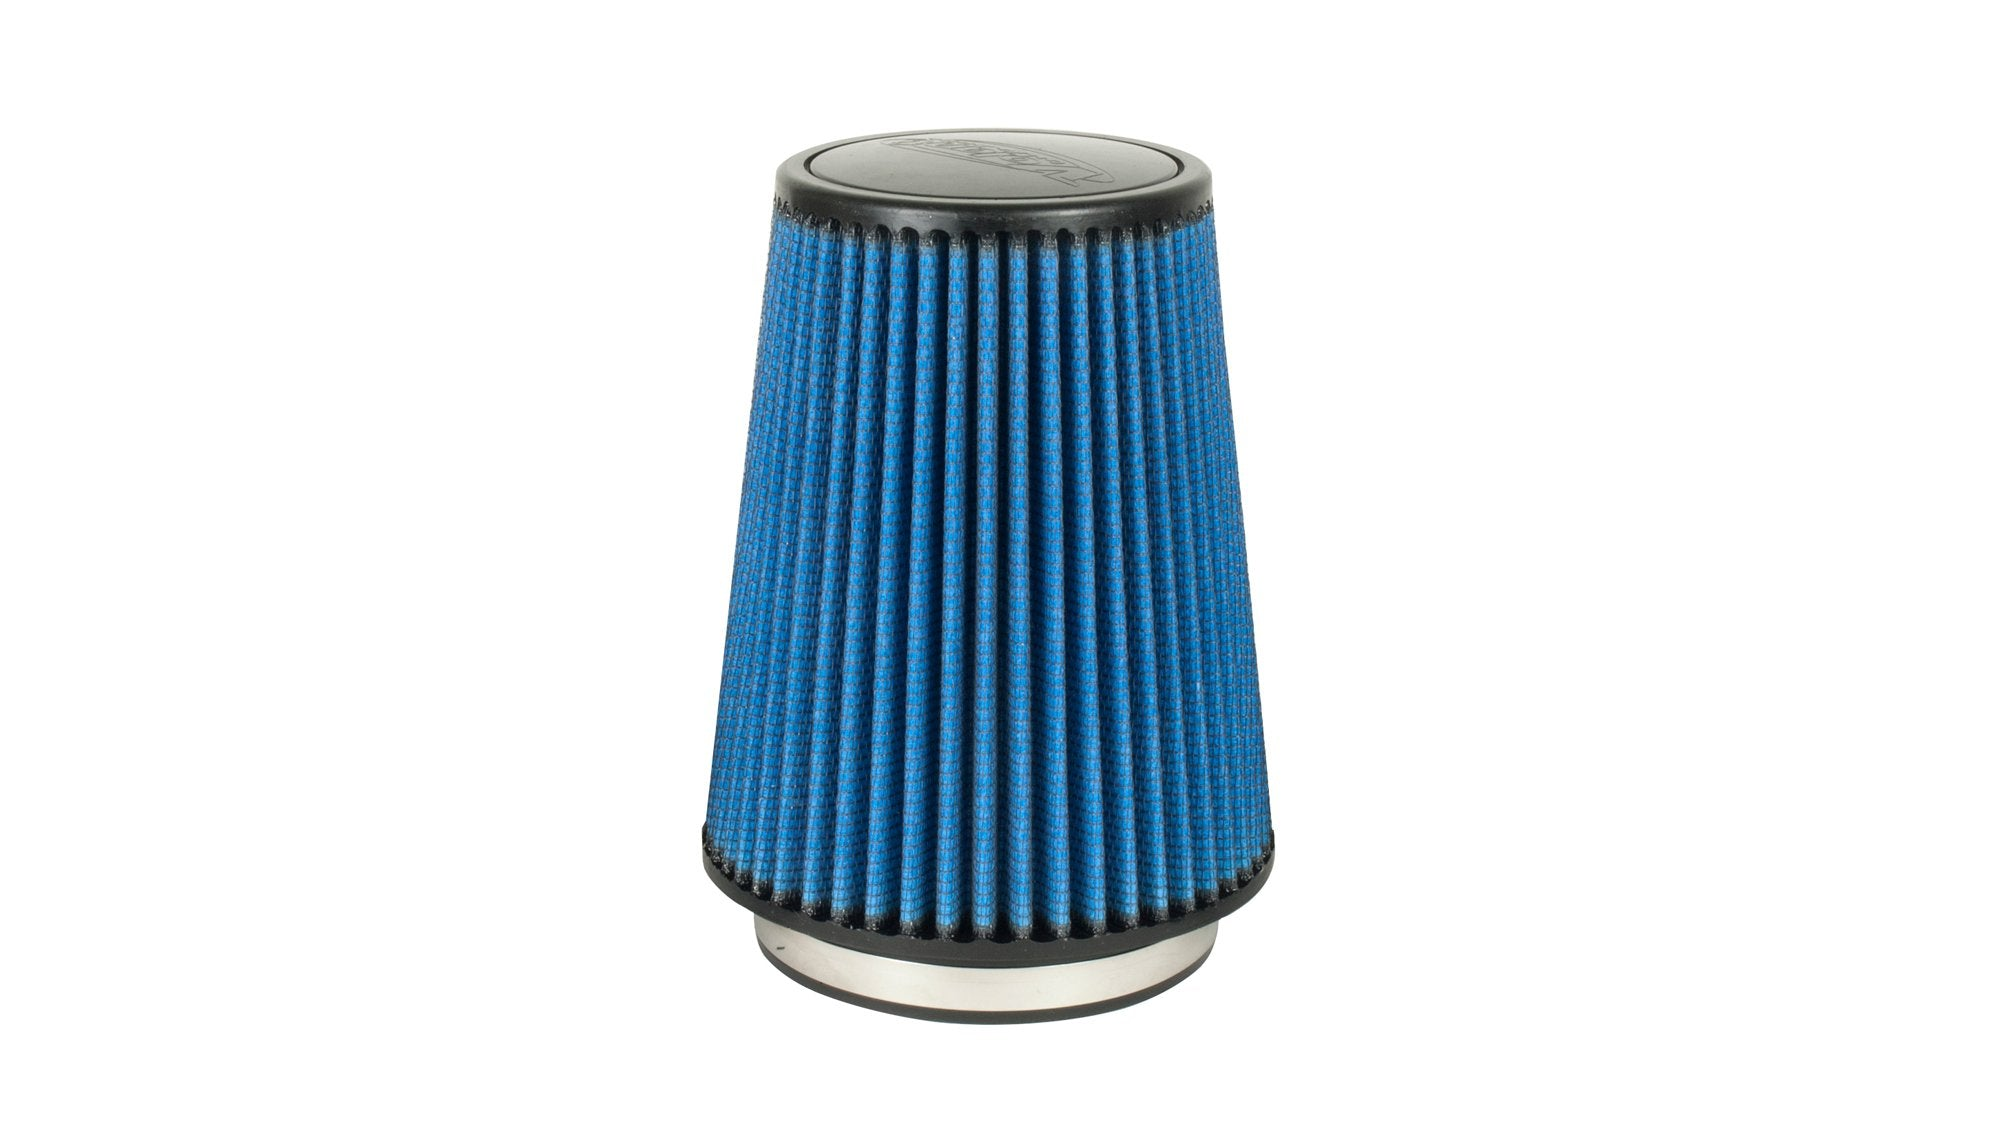 Pro5 Cotton Oiled Air Intake Air Filter - 5117